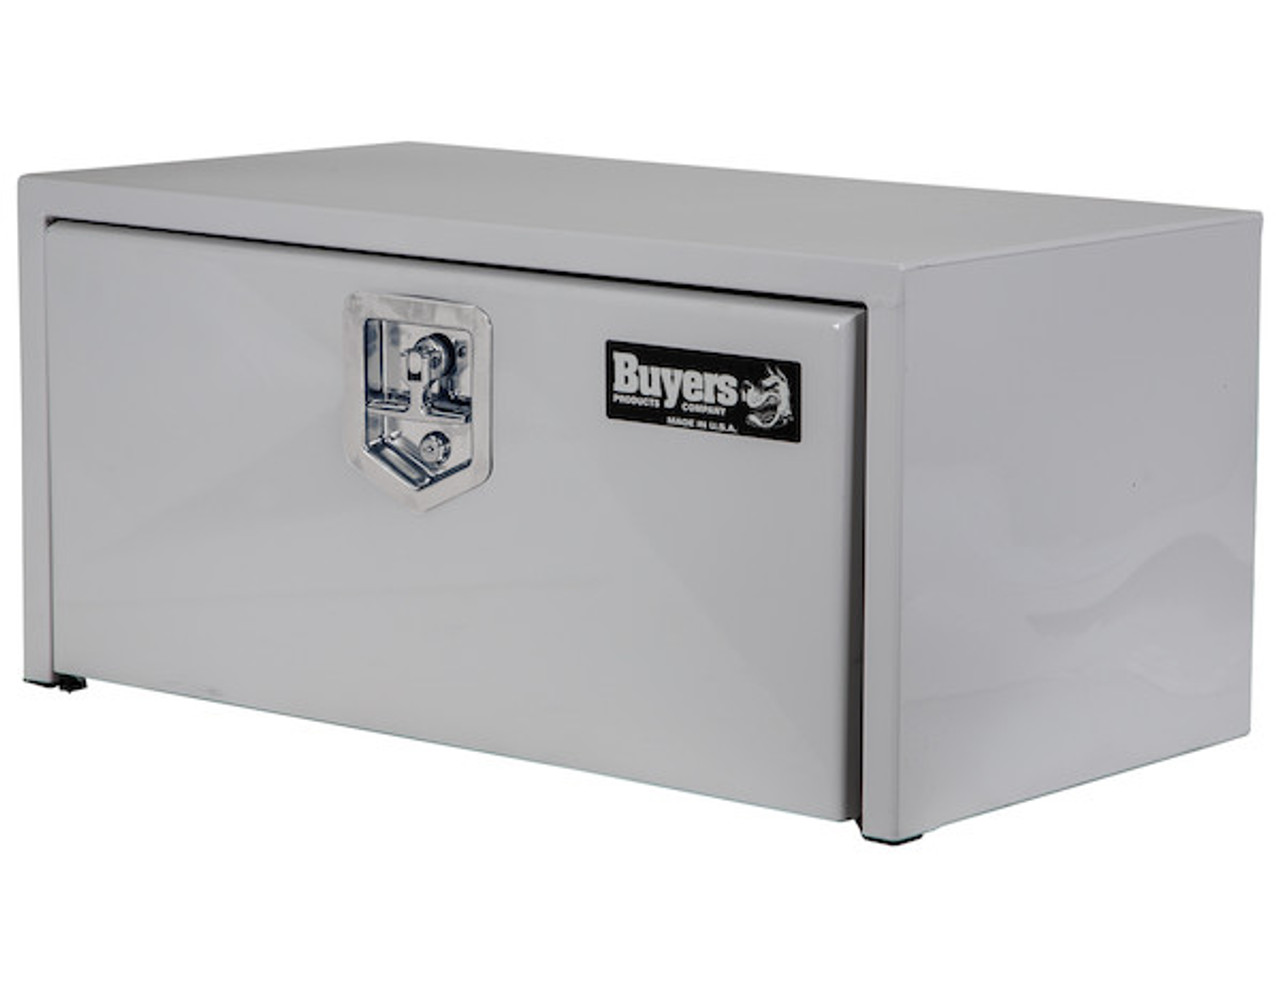 """1703404 BUYERS PRODUCTS WHITE STEEL UNDERBODY TRUCK TOOLBOX WITH BUILT-IN SHELF 14""""HX16""""DX30""""W Picture # 3"""